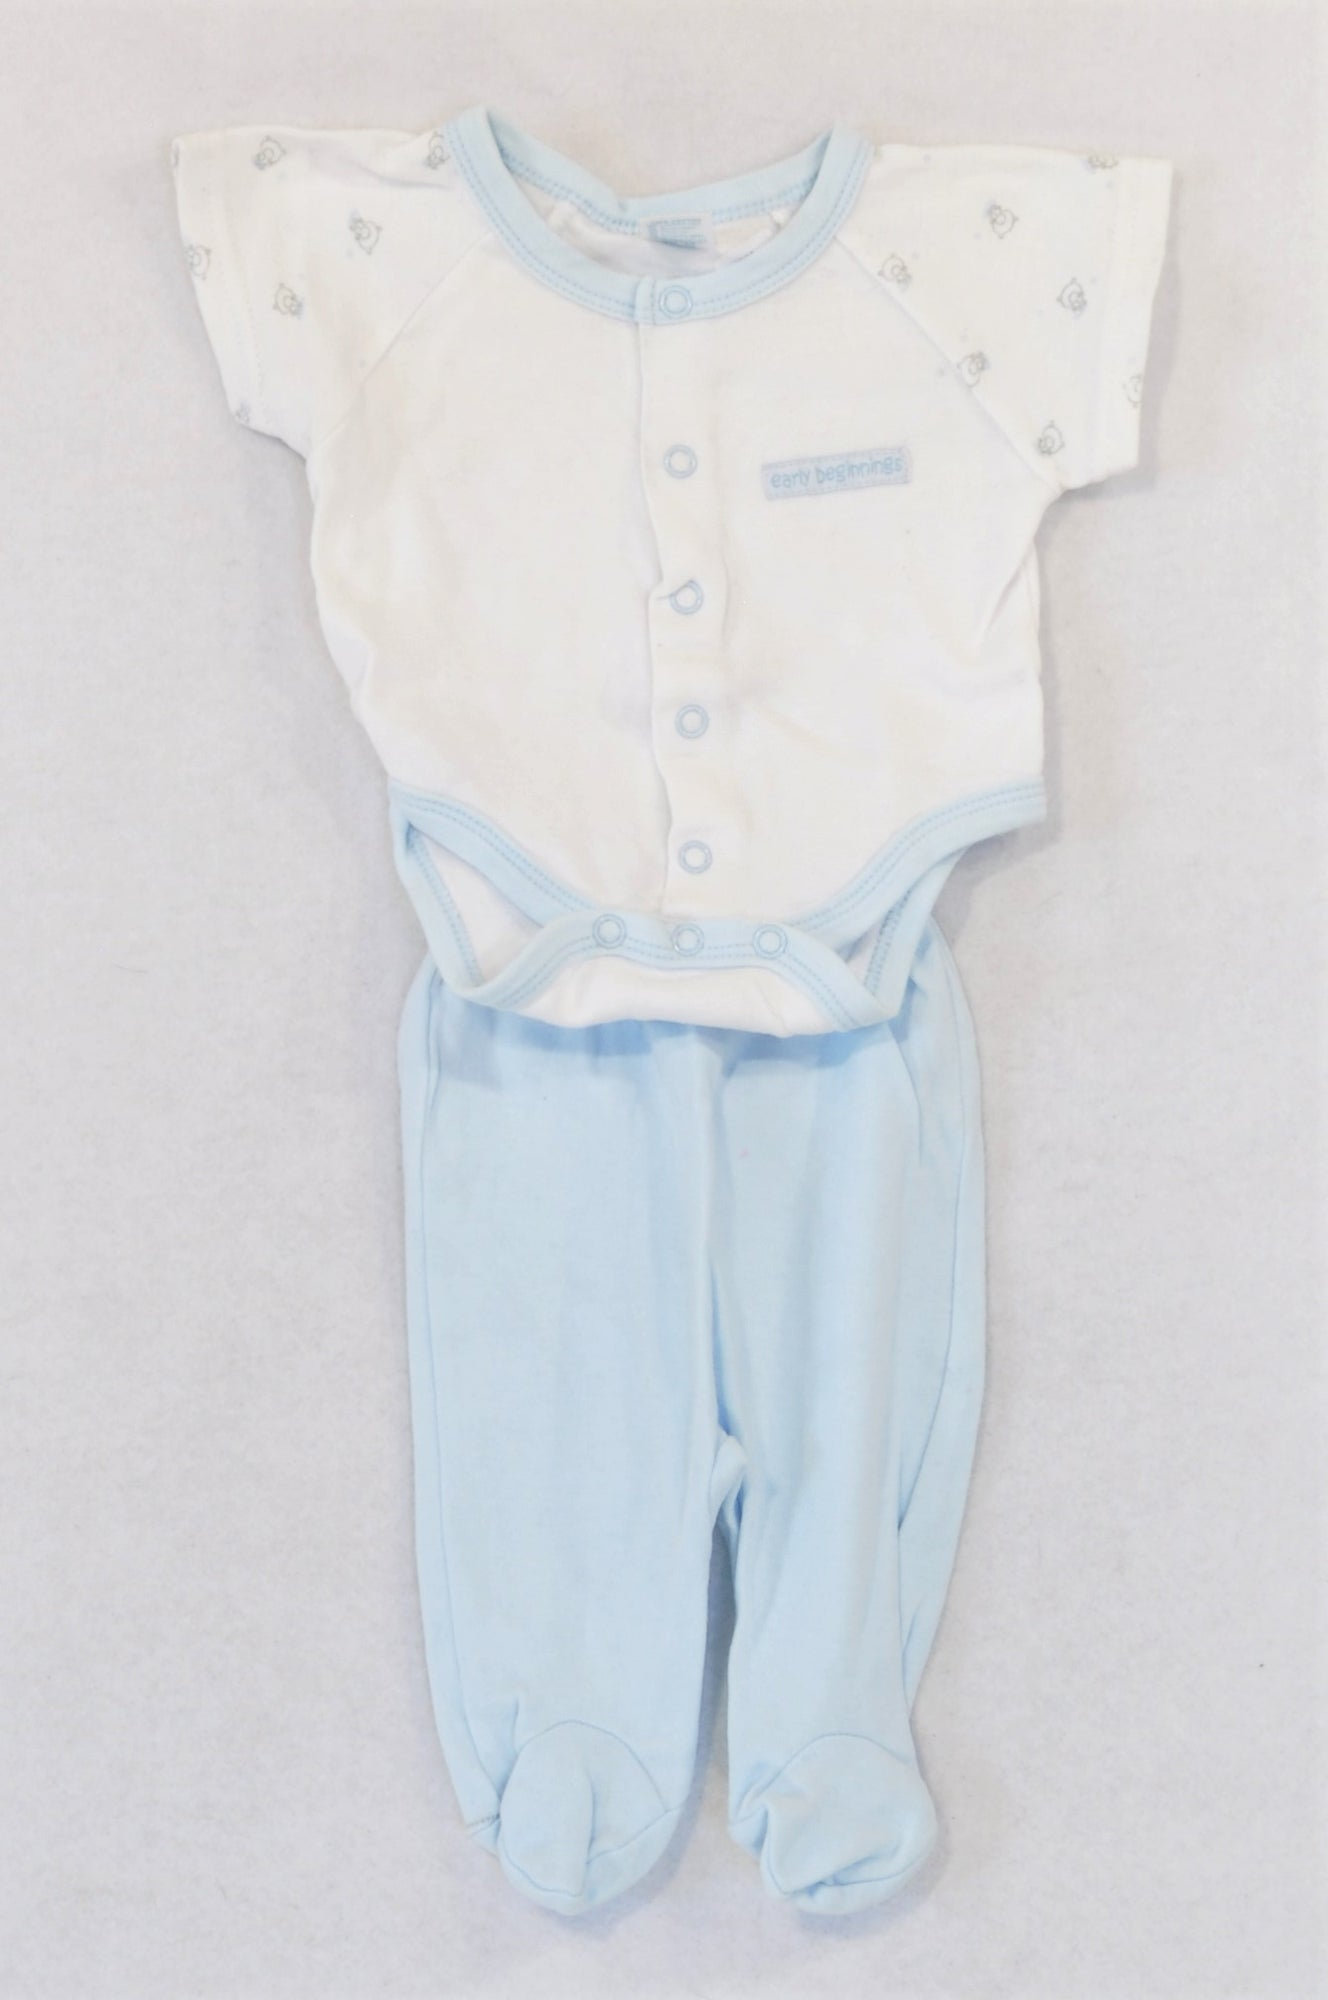 Ackermans Blue Trim Baby Grow & Leggings Outfit Boys Tiny Baby